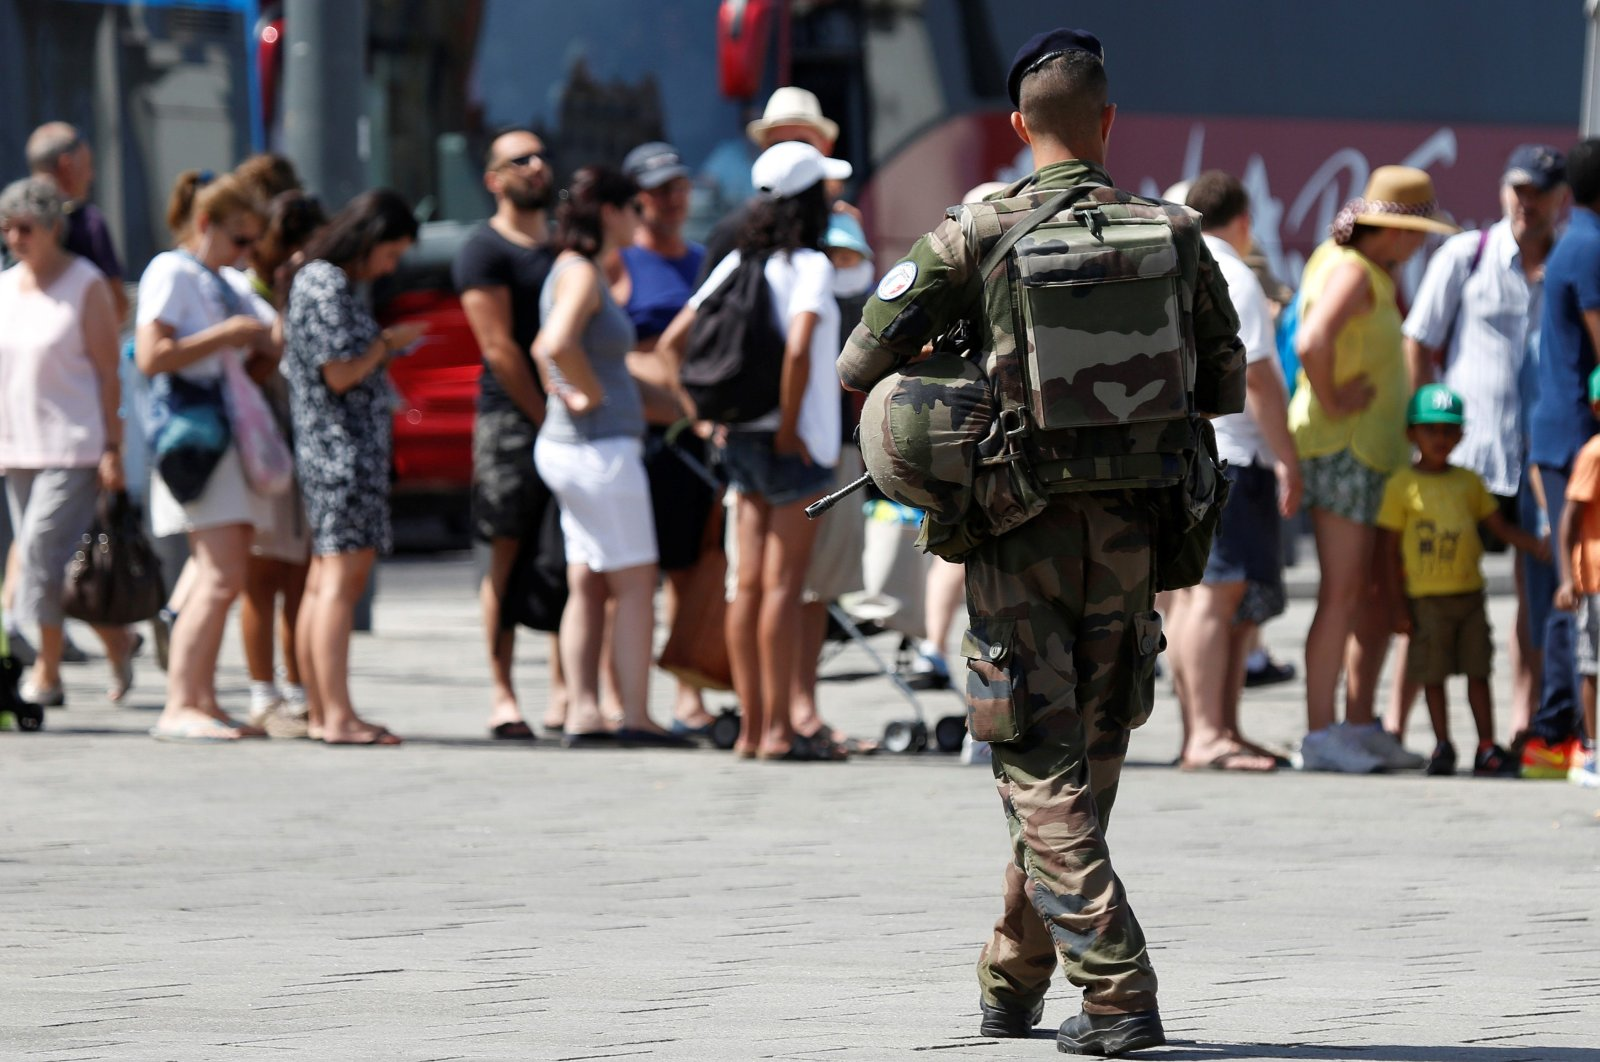 A French soldier patrols at the Old Harbor in Marseille to maintain security after French lawmakers approved a six-month extension of emergency rule within France, July 21, 2016. (Reuters Photo)